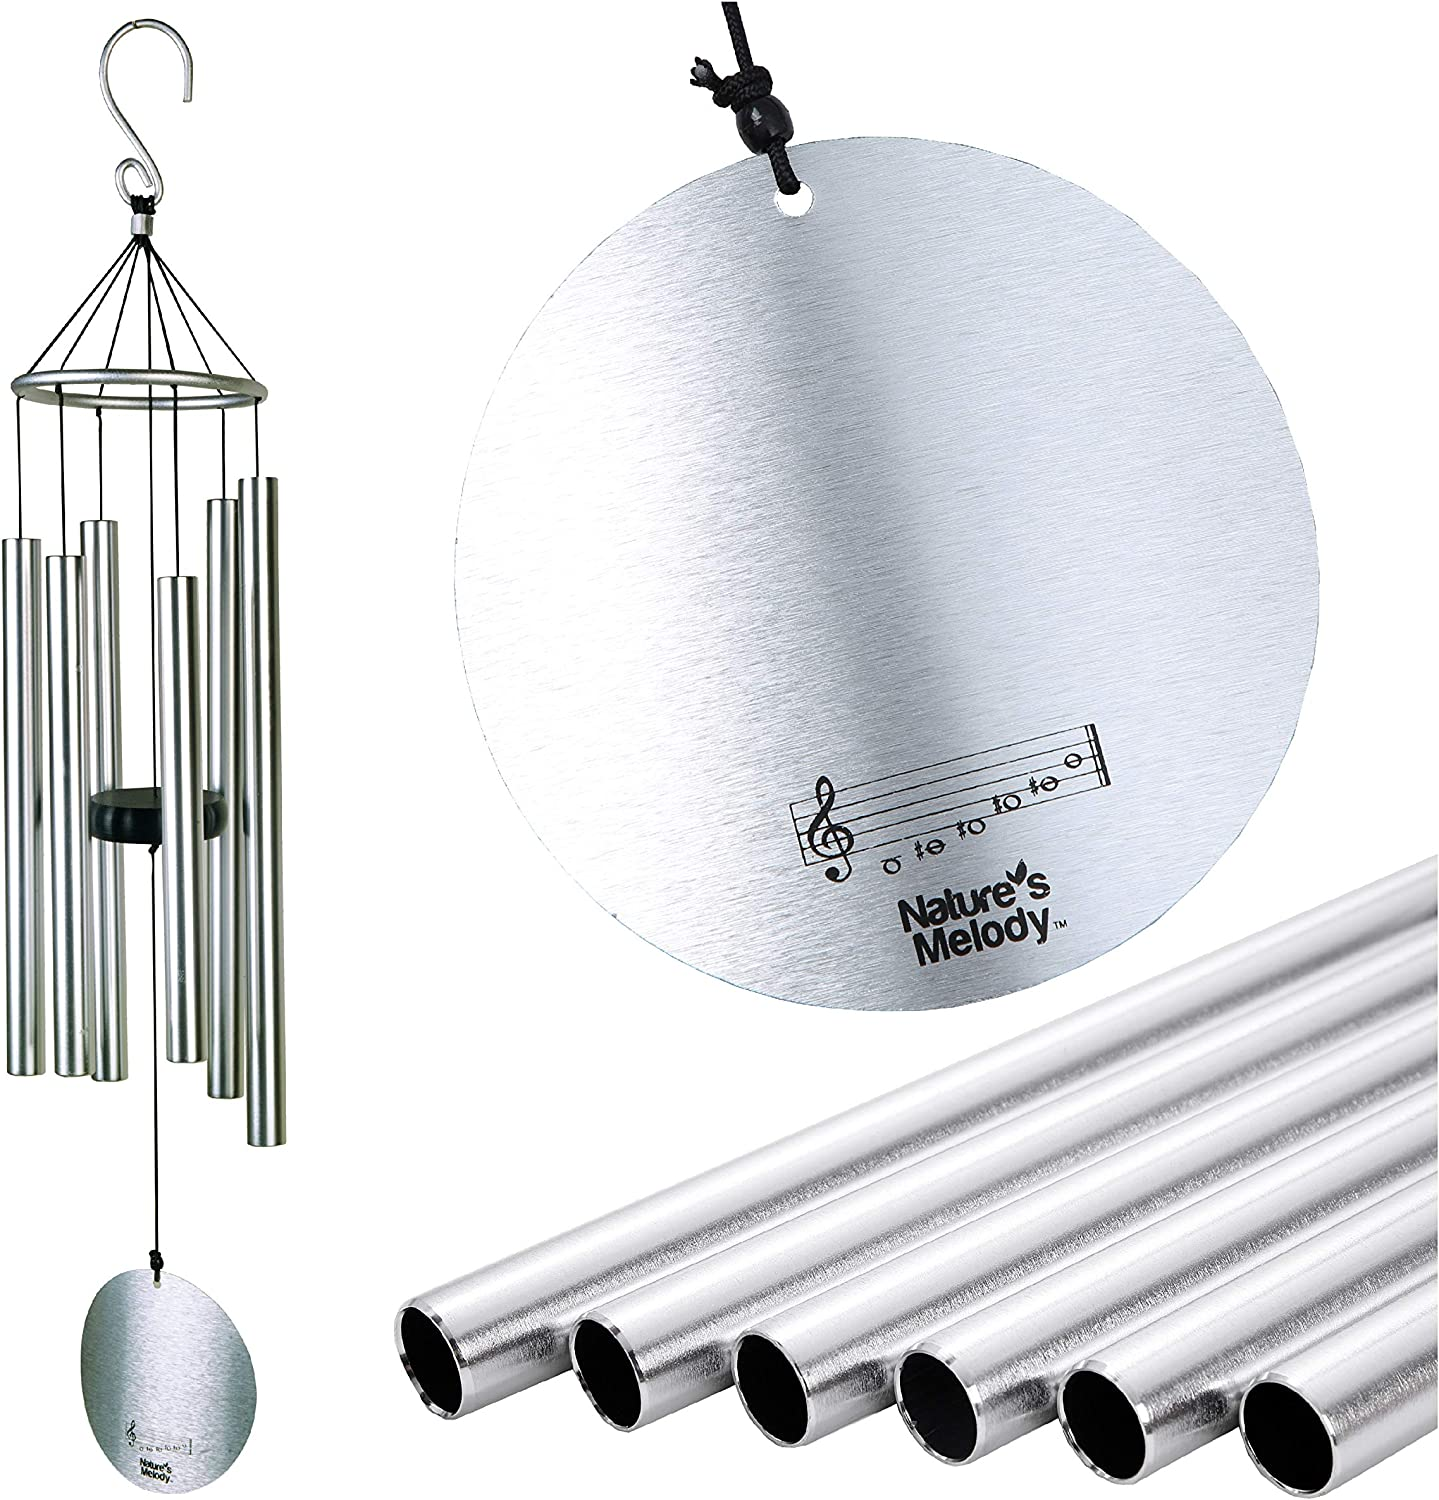 Nature's Melody Aureole Tunes Wind Chimes – Outdoor Windchime with 6 Tubes Tuned to B Pentatonic Scale, 100% Rustproof Aluminum, Powder Finish & S Hook Hanger for Sympathy, Memorial Gift or Zen Garden